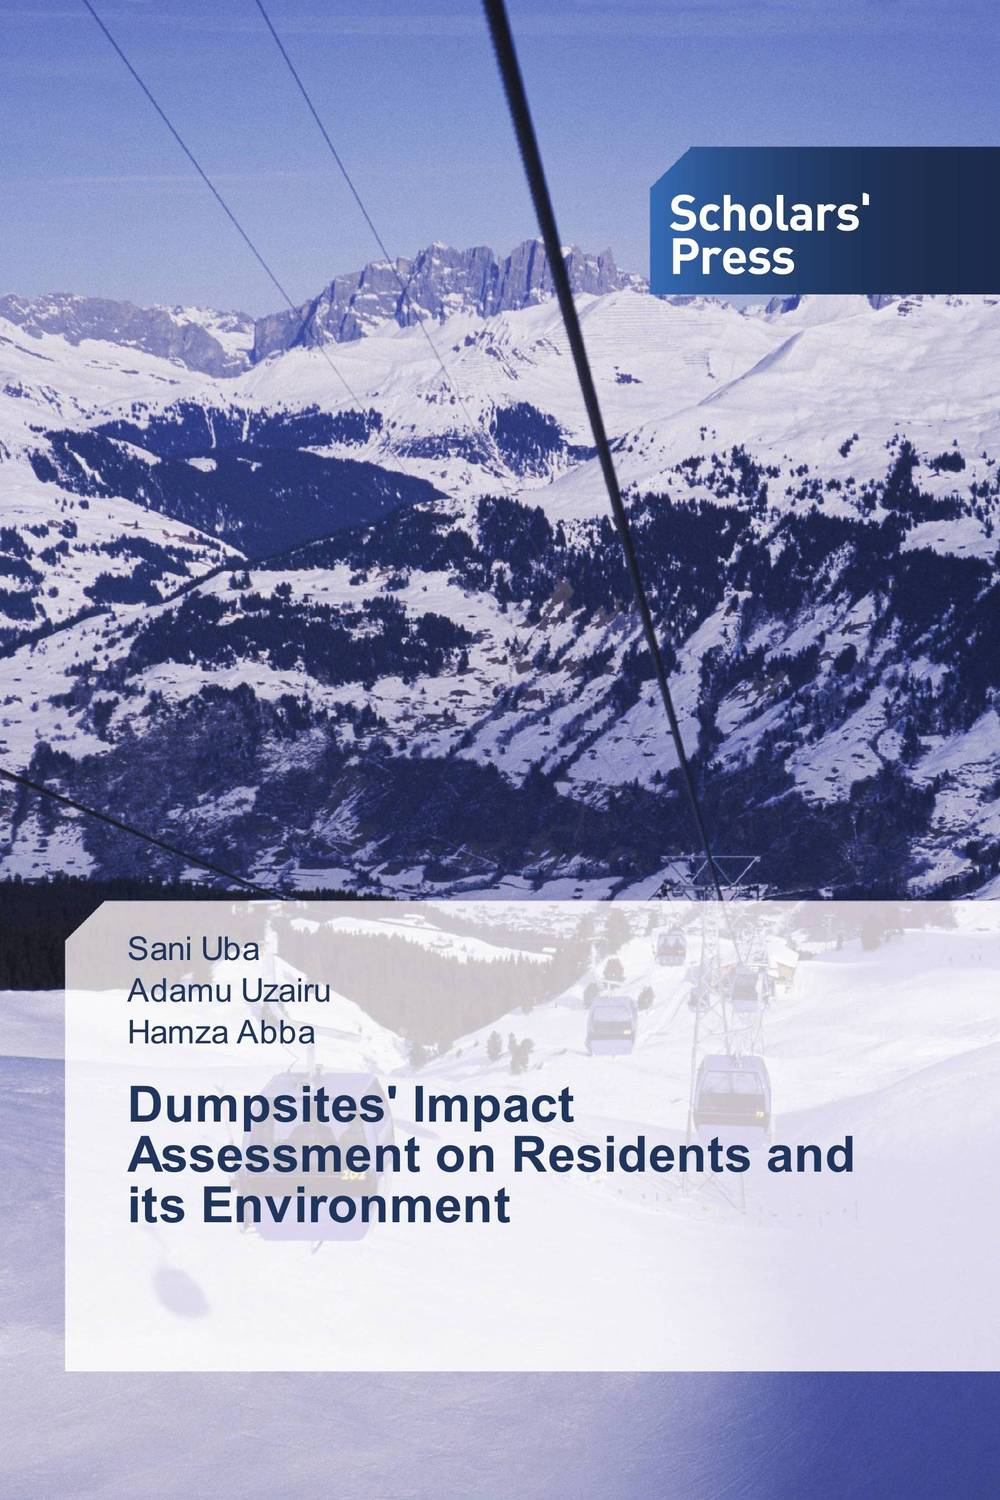 Dumpsites' Impact Assessment on Residents and its Environment